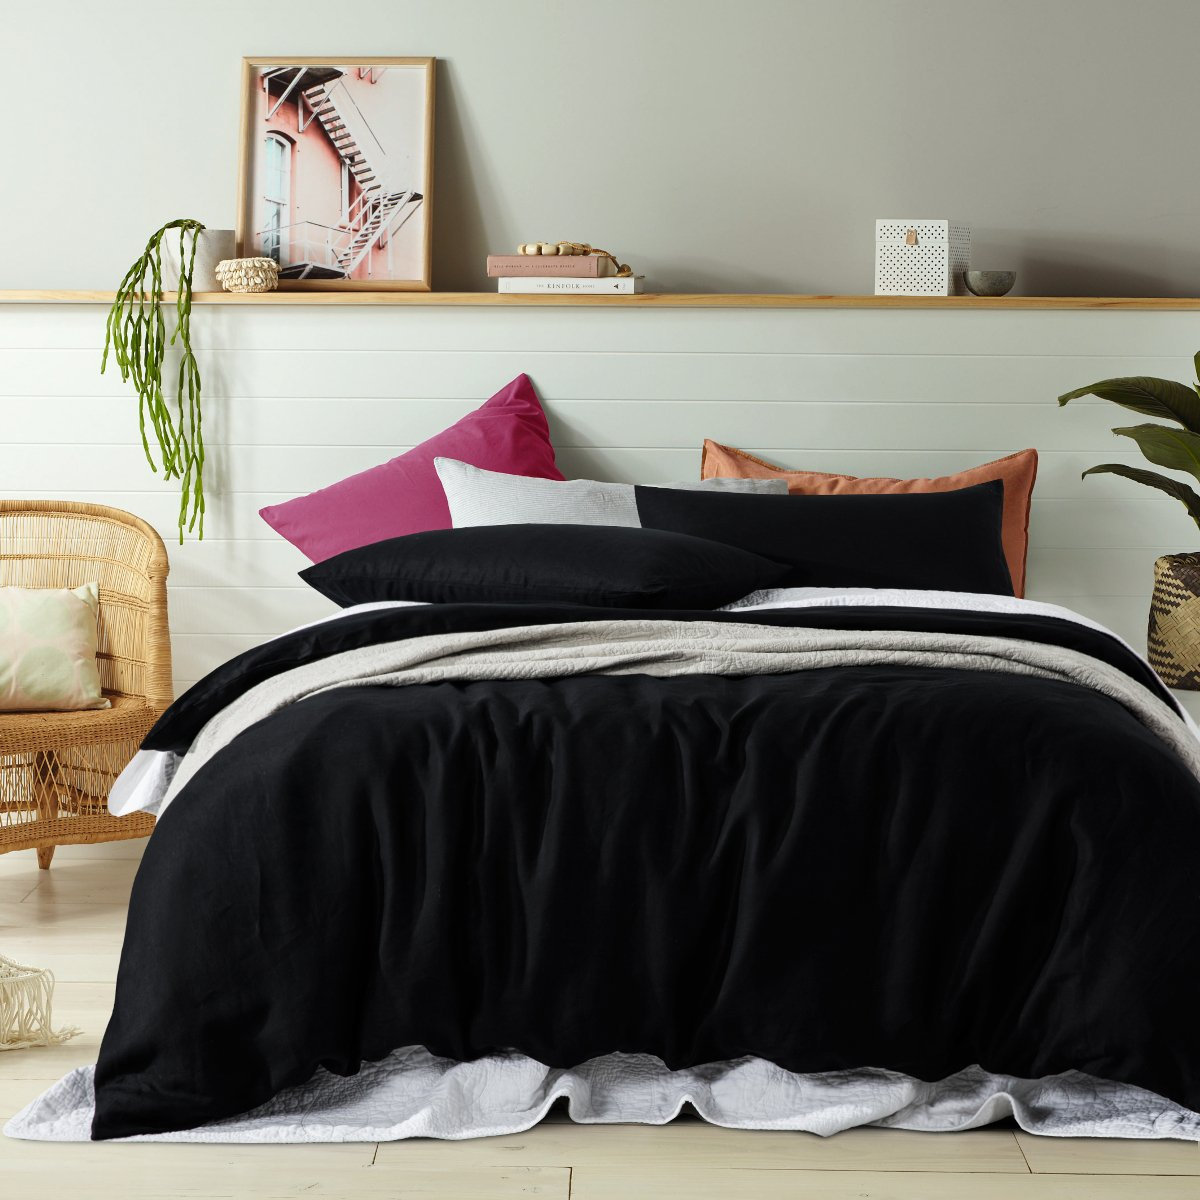 100% Linen black duvet cover set. Vinatge wash linen quilt cover set